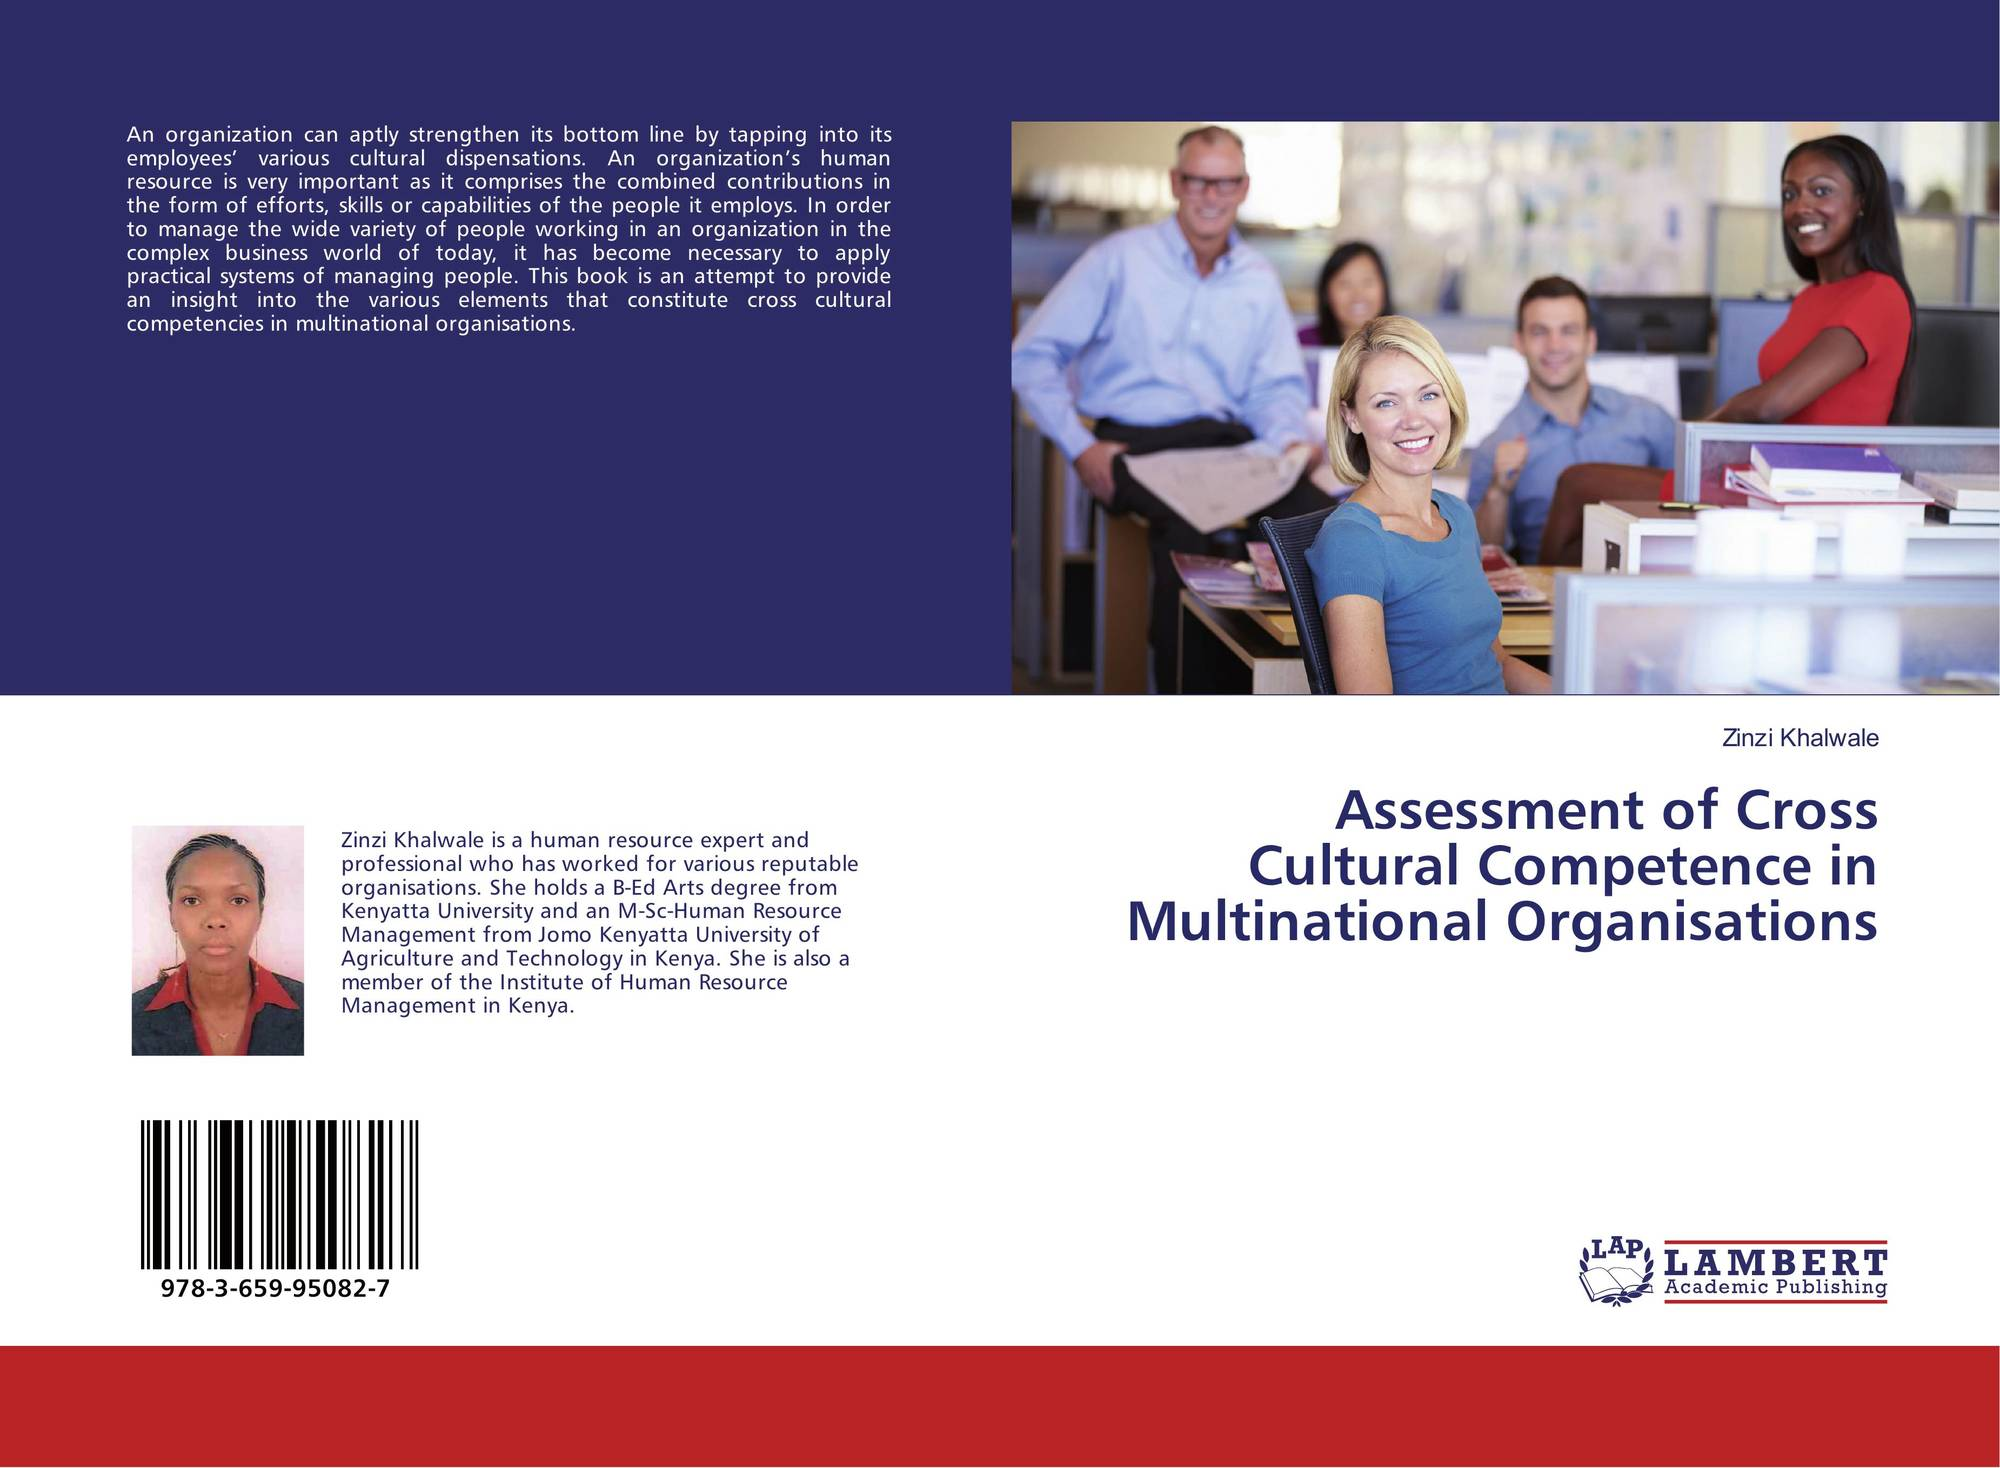 cross cultural conflict in organisations Anrv296-ps58-19 ari 17 november 2006 1:33 cross-cultural organizational behavior michele j gelfand,1 miriam erez,2 and zeynep aycan3 1department of psychology, university of maryland, college park, maryland 20742.